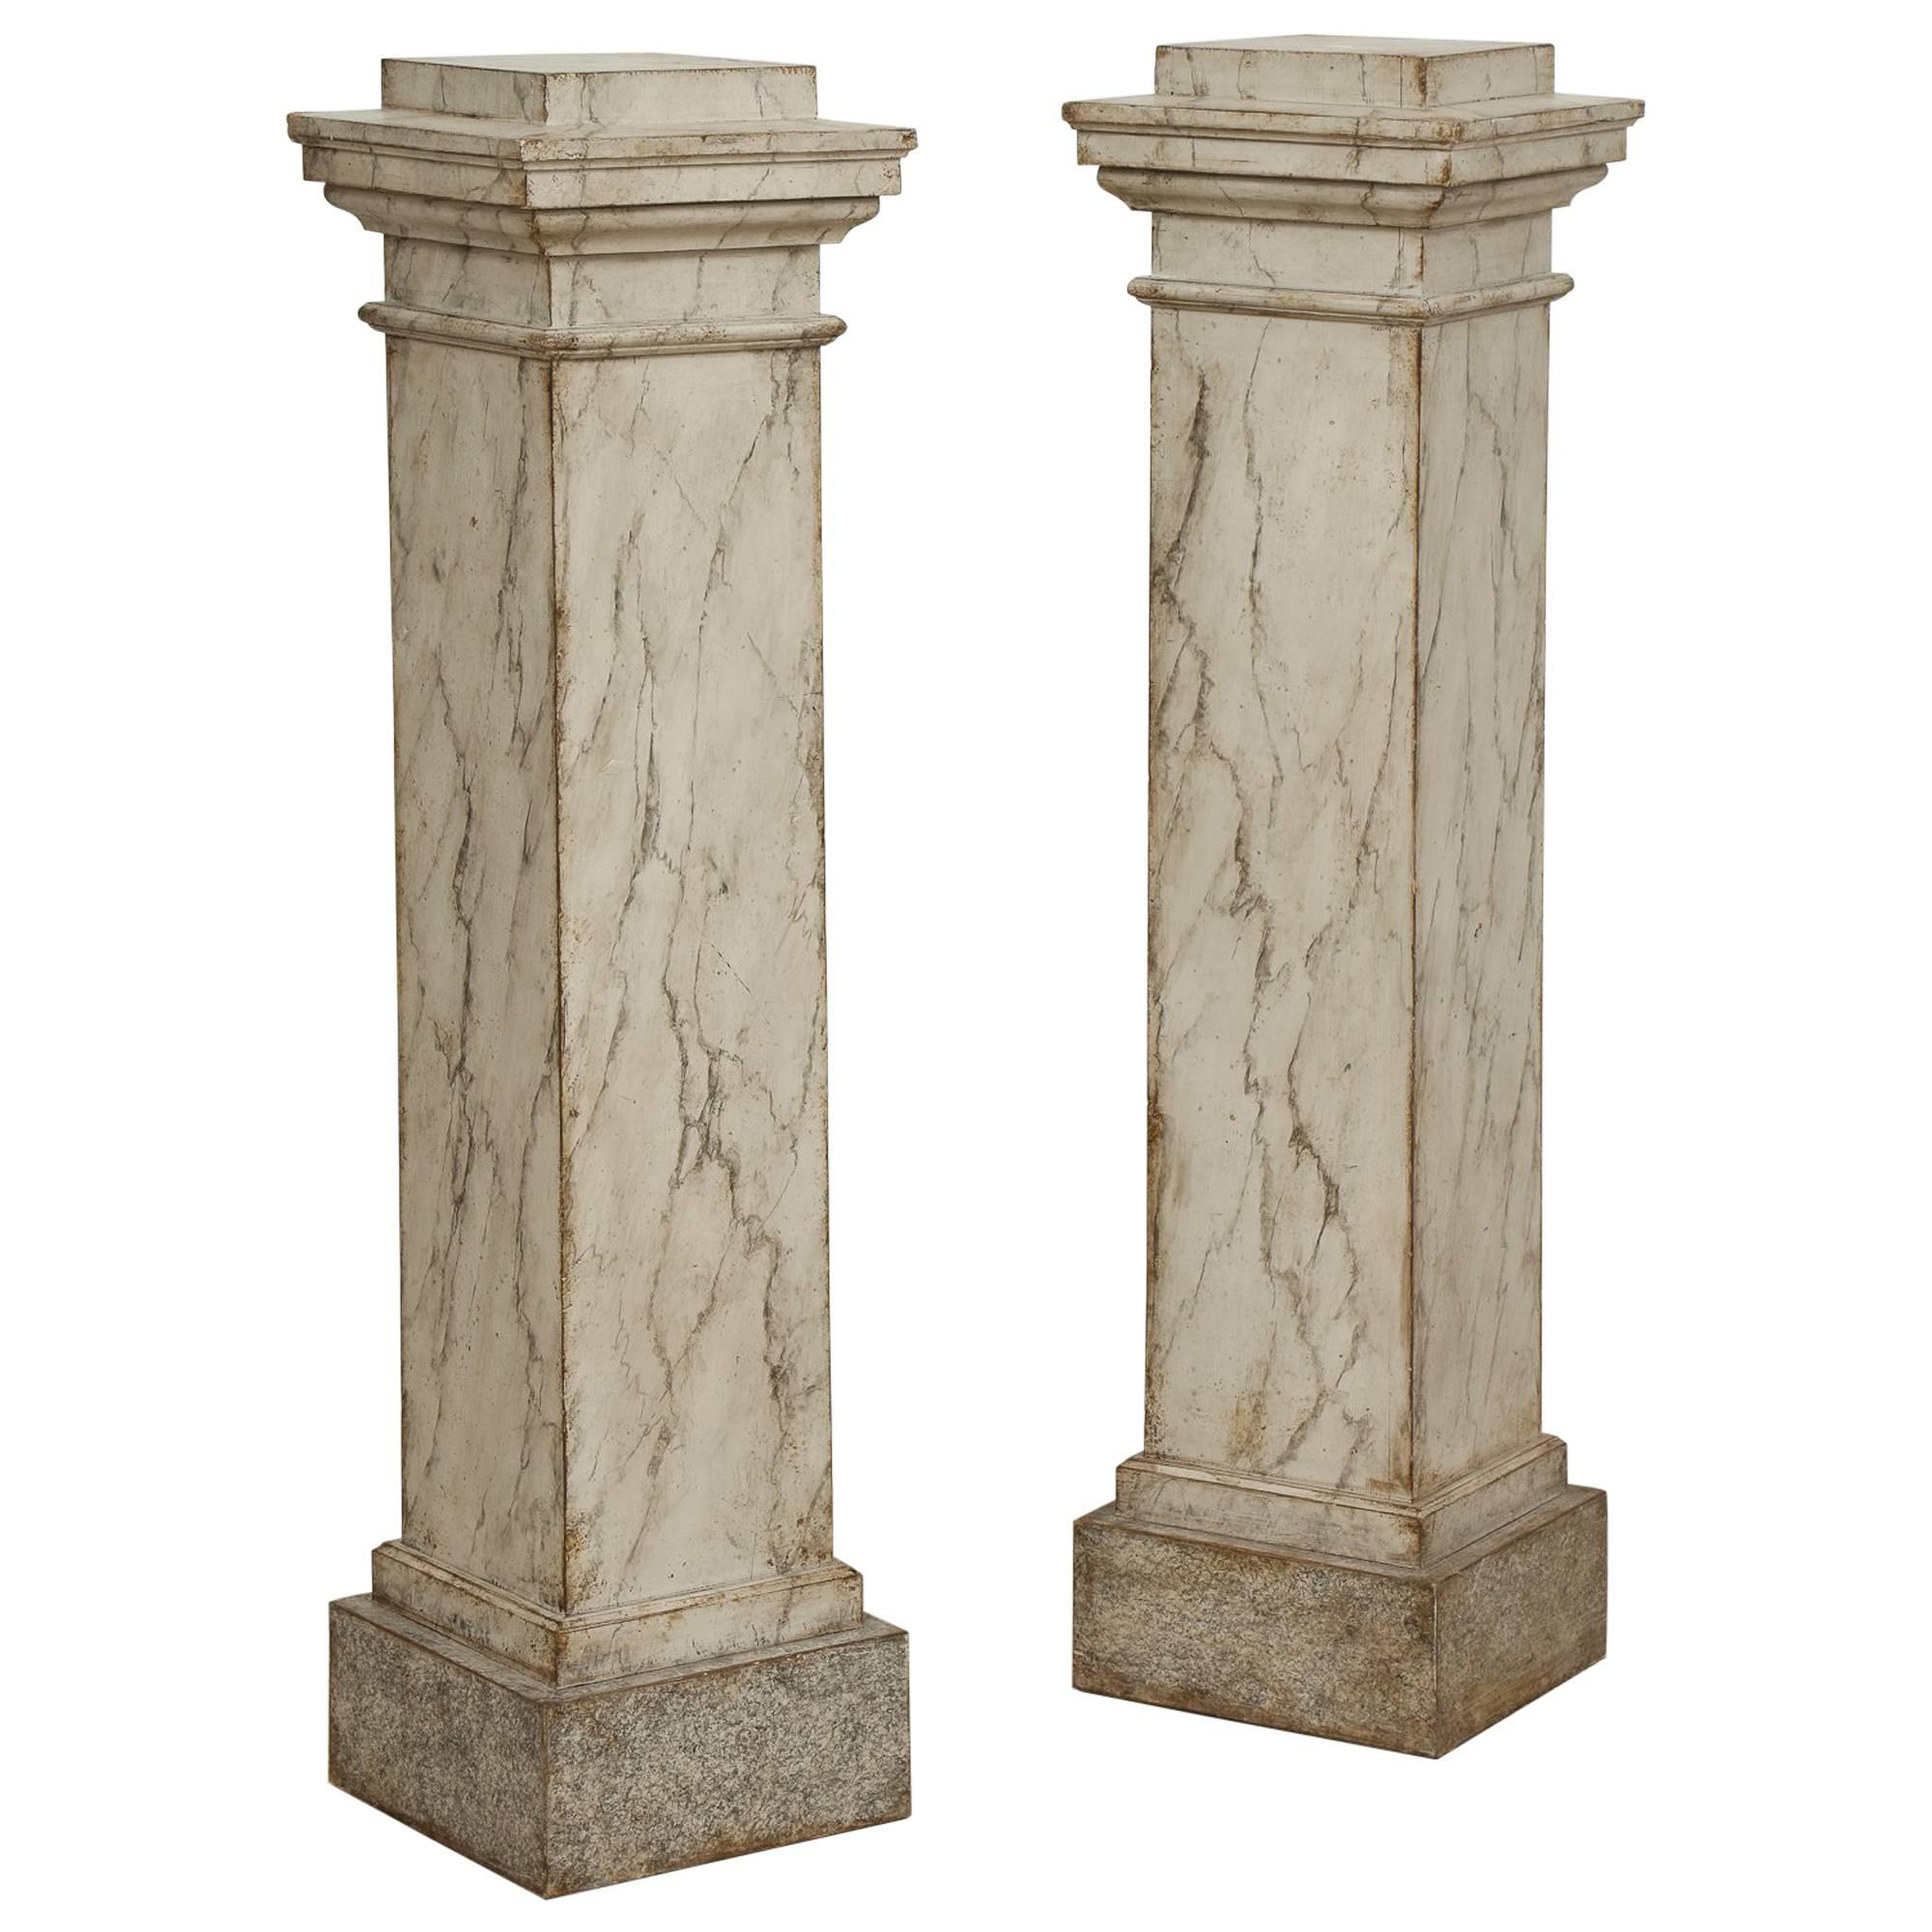 Antique And Vintage Pedestals And Columns 1214 For Sale At 1stdibs